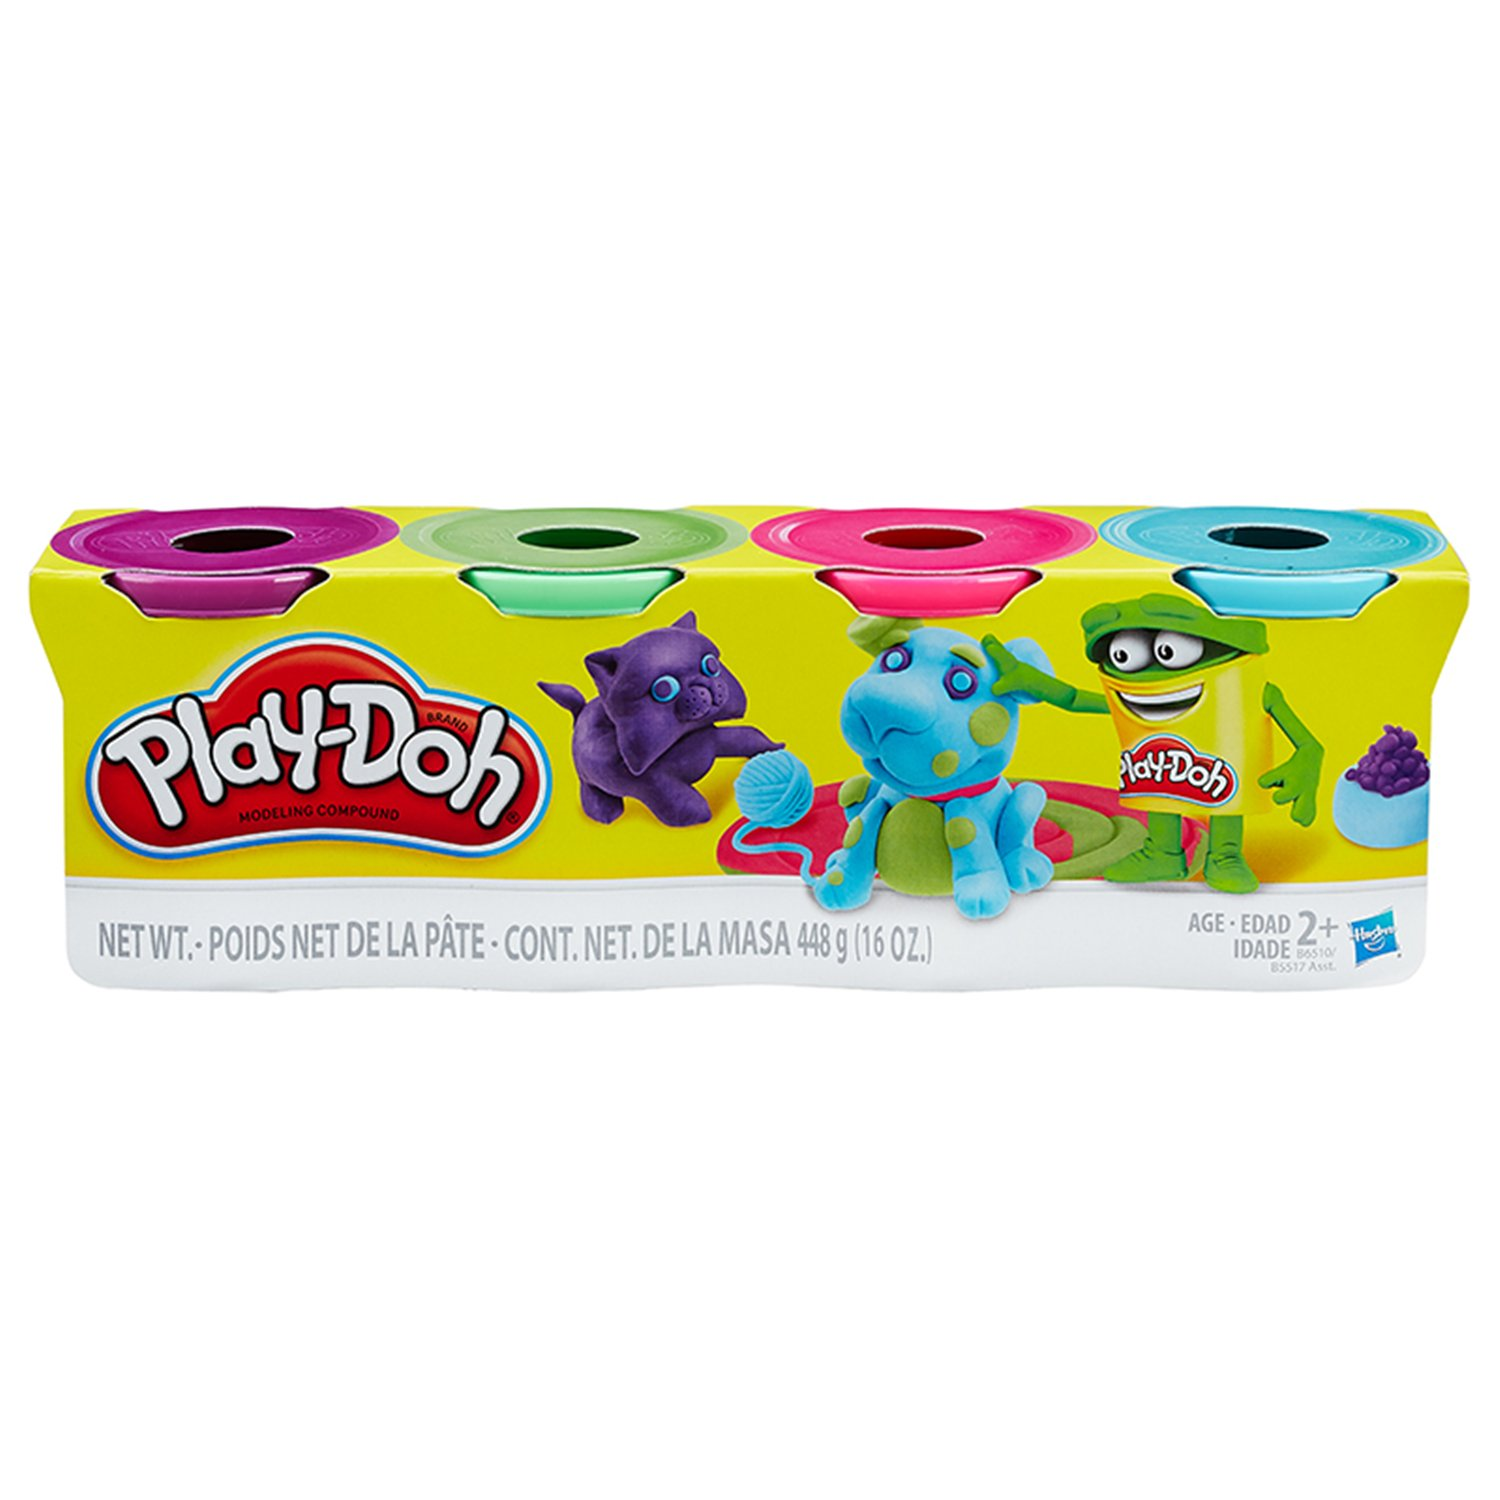 Play-Doh Brand Modeling Compound Hasbro B6510AS00